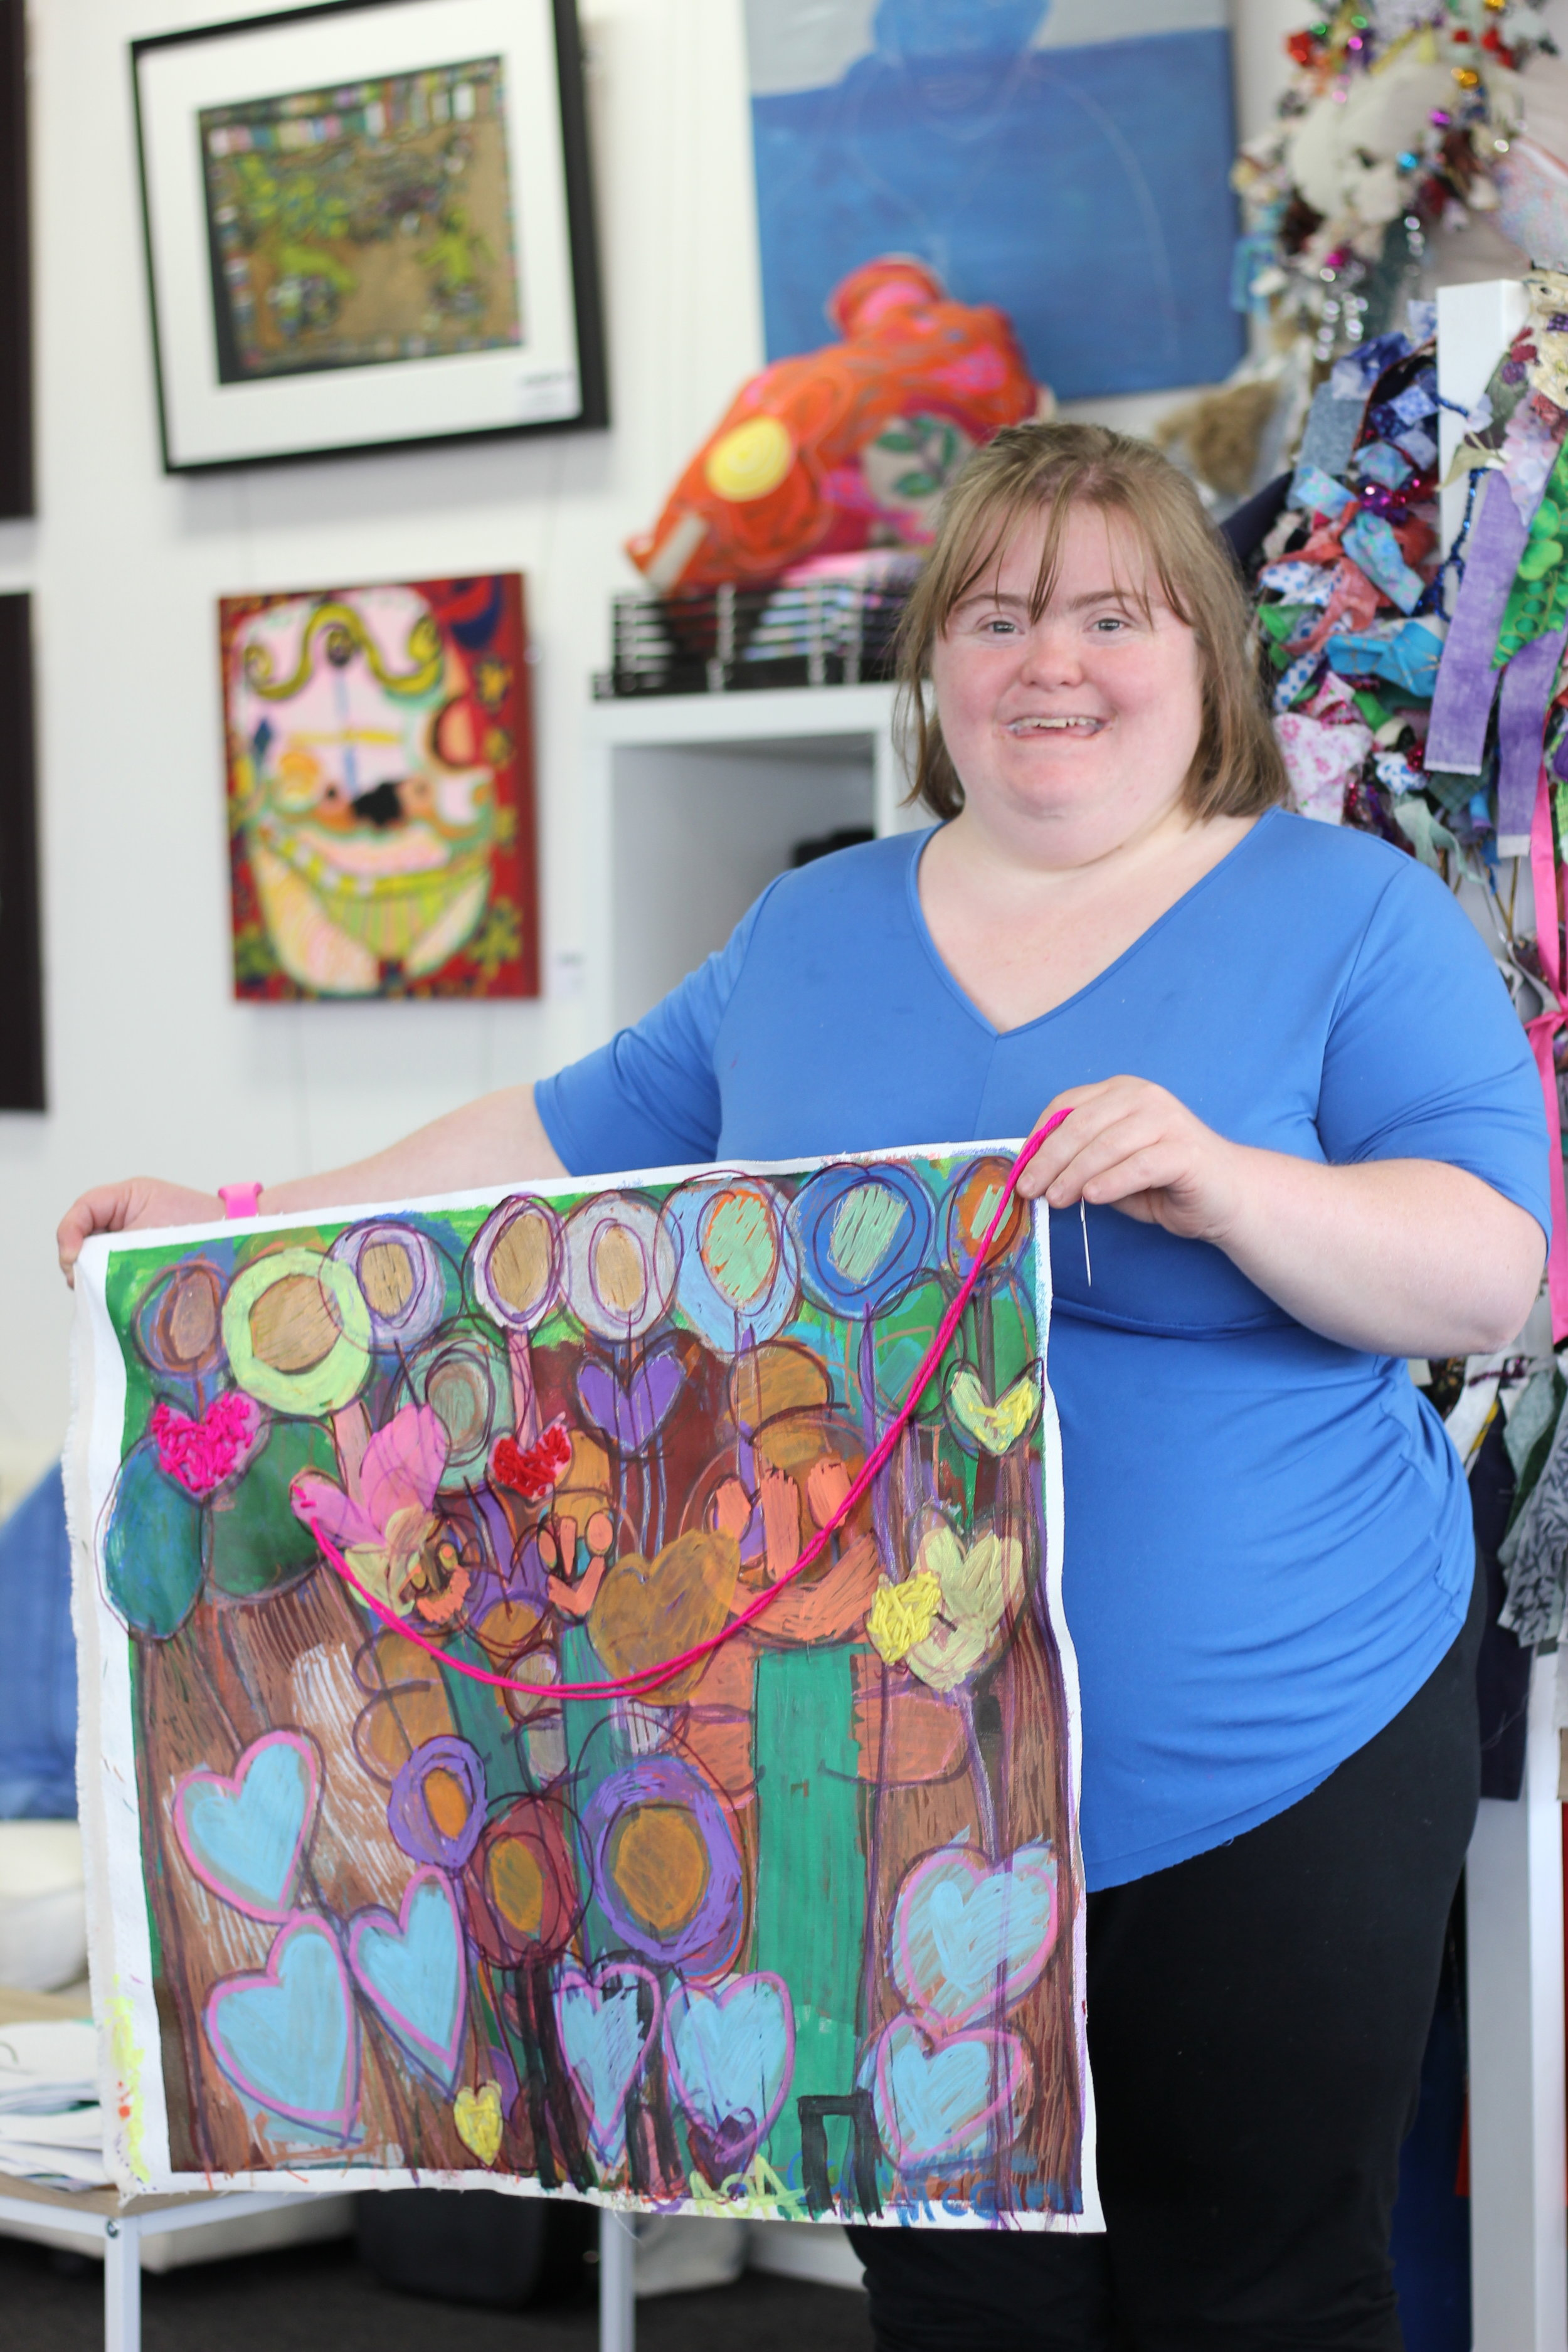 """I've been doing art for ages and ages. These are my ""Fairies Forests"". I am a great, great artist. I sew my artwork. I come here every every Tuesday with Emma and Gab. Sometimes we hang out with our friends. I love this place, it's very good for us"" - Catherine"